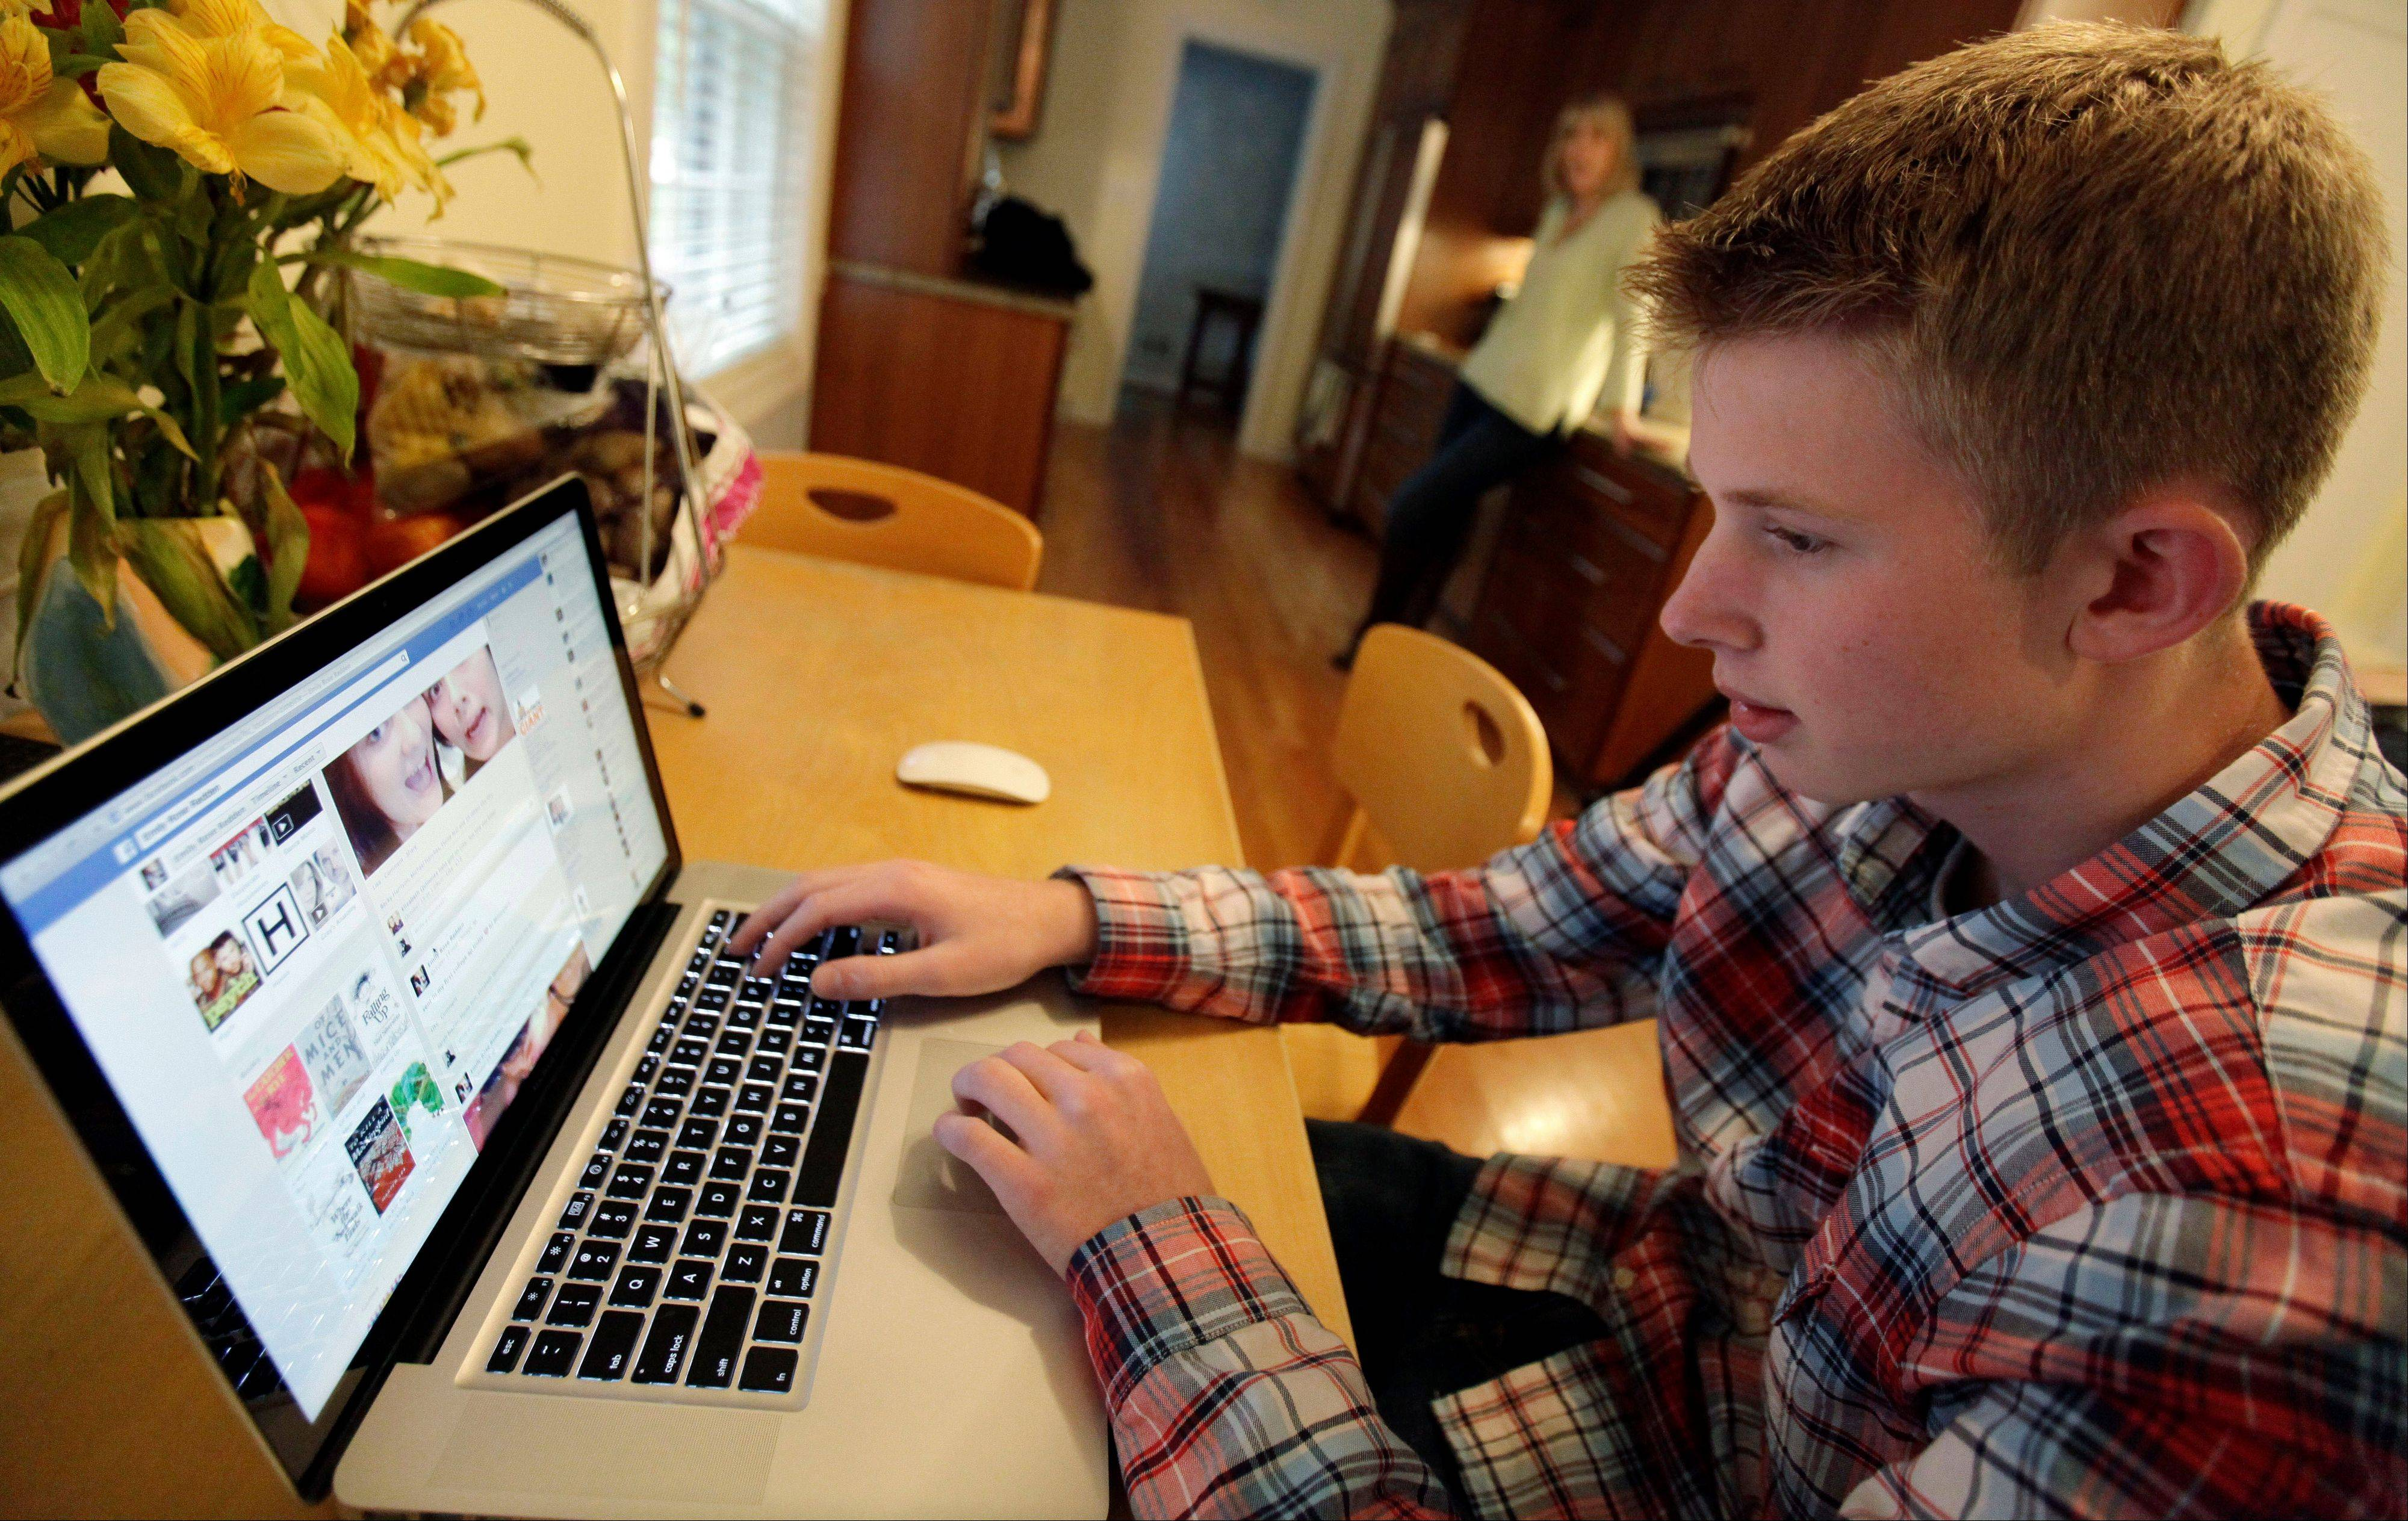 Associated PressMark Risinger, 16, checks his Facebook page on his computer as his mother, Amy Risinger, looks on at their home in Glenview.